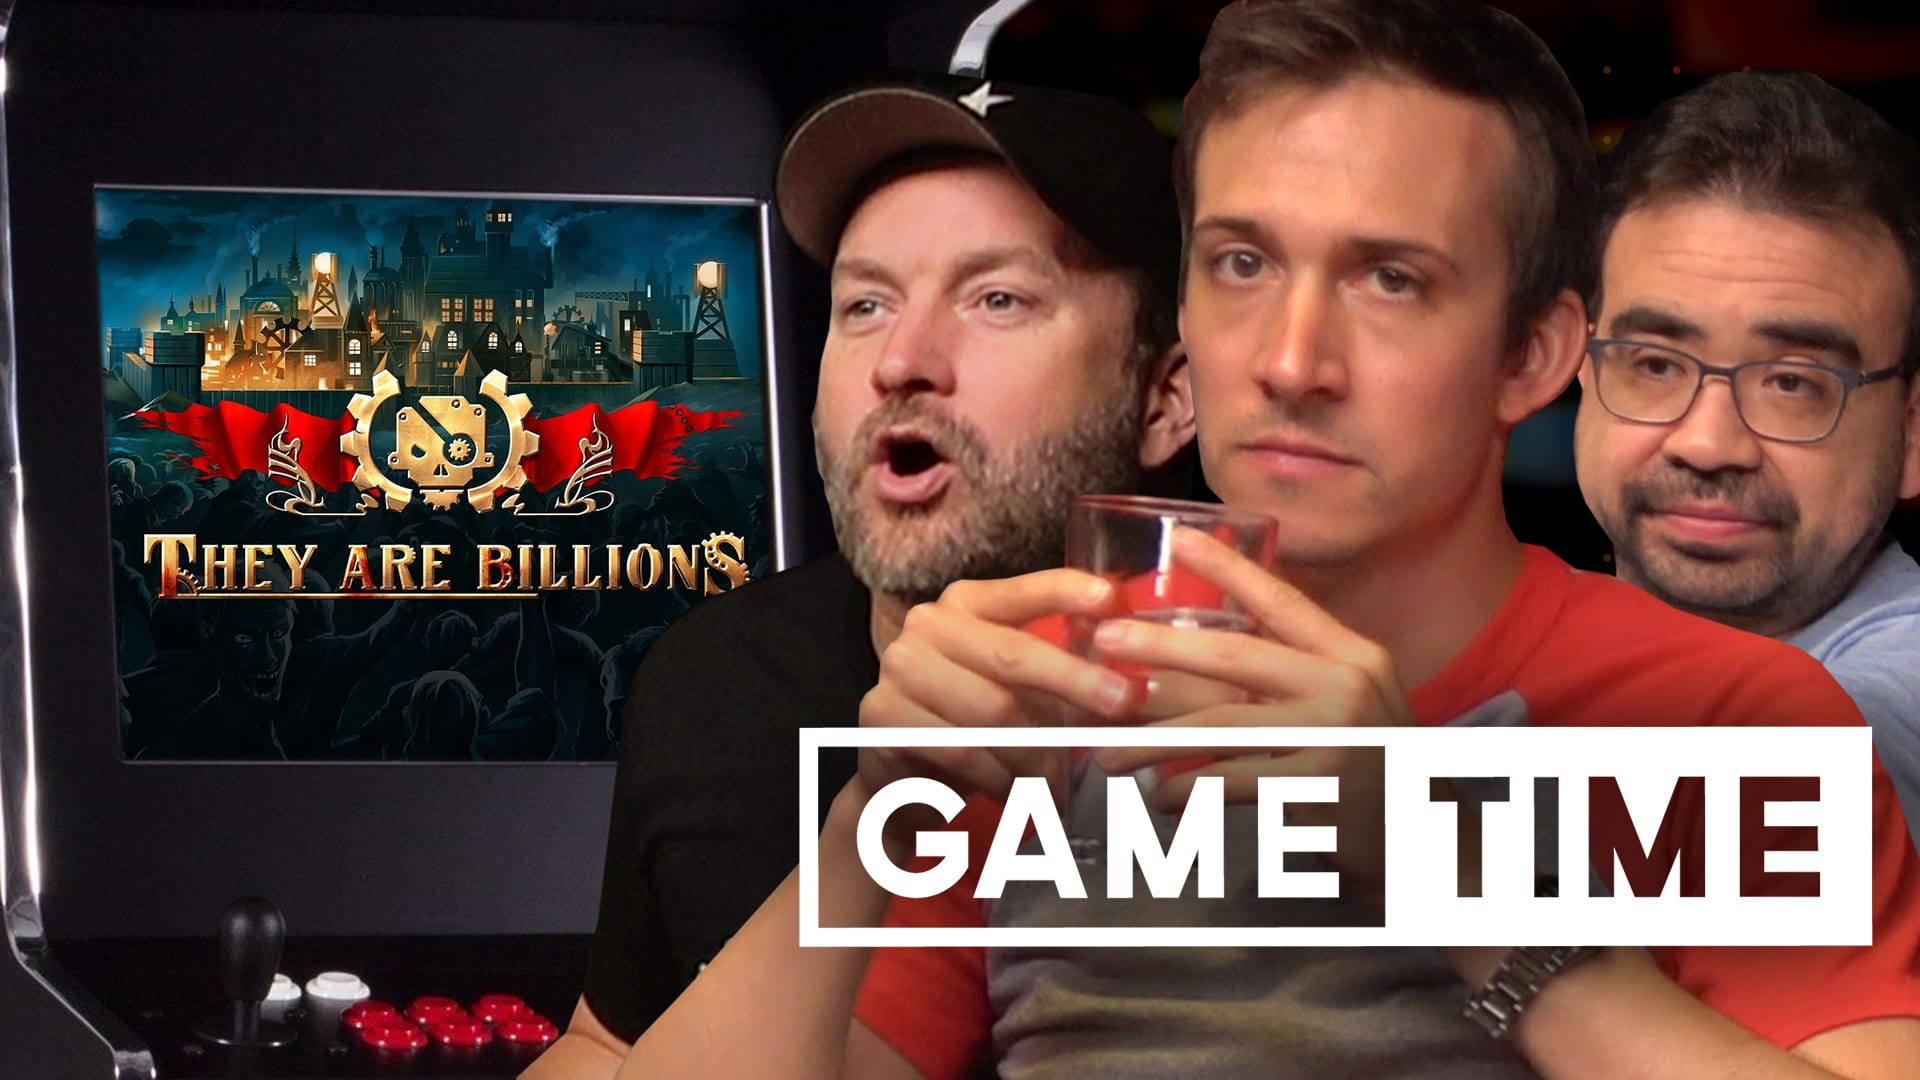 They are Billions Vs HORDE DAY - Rooster Teeth